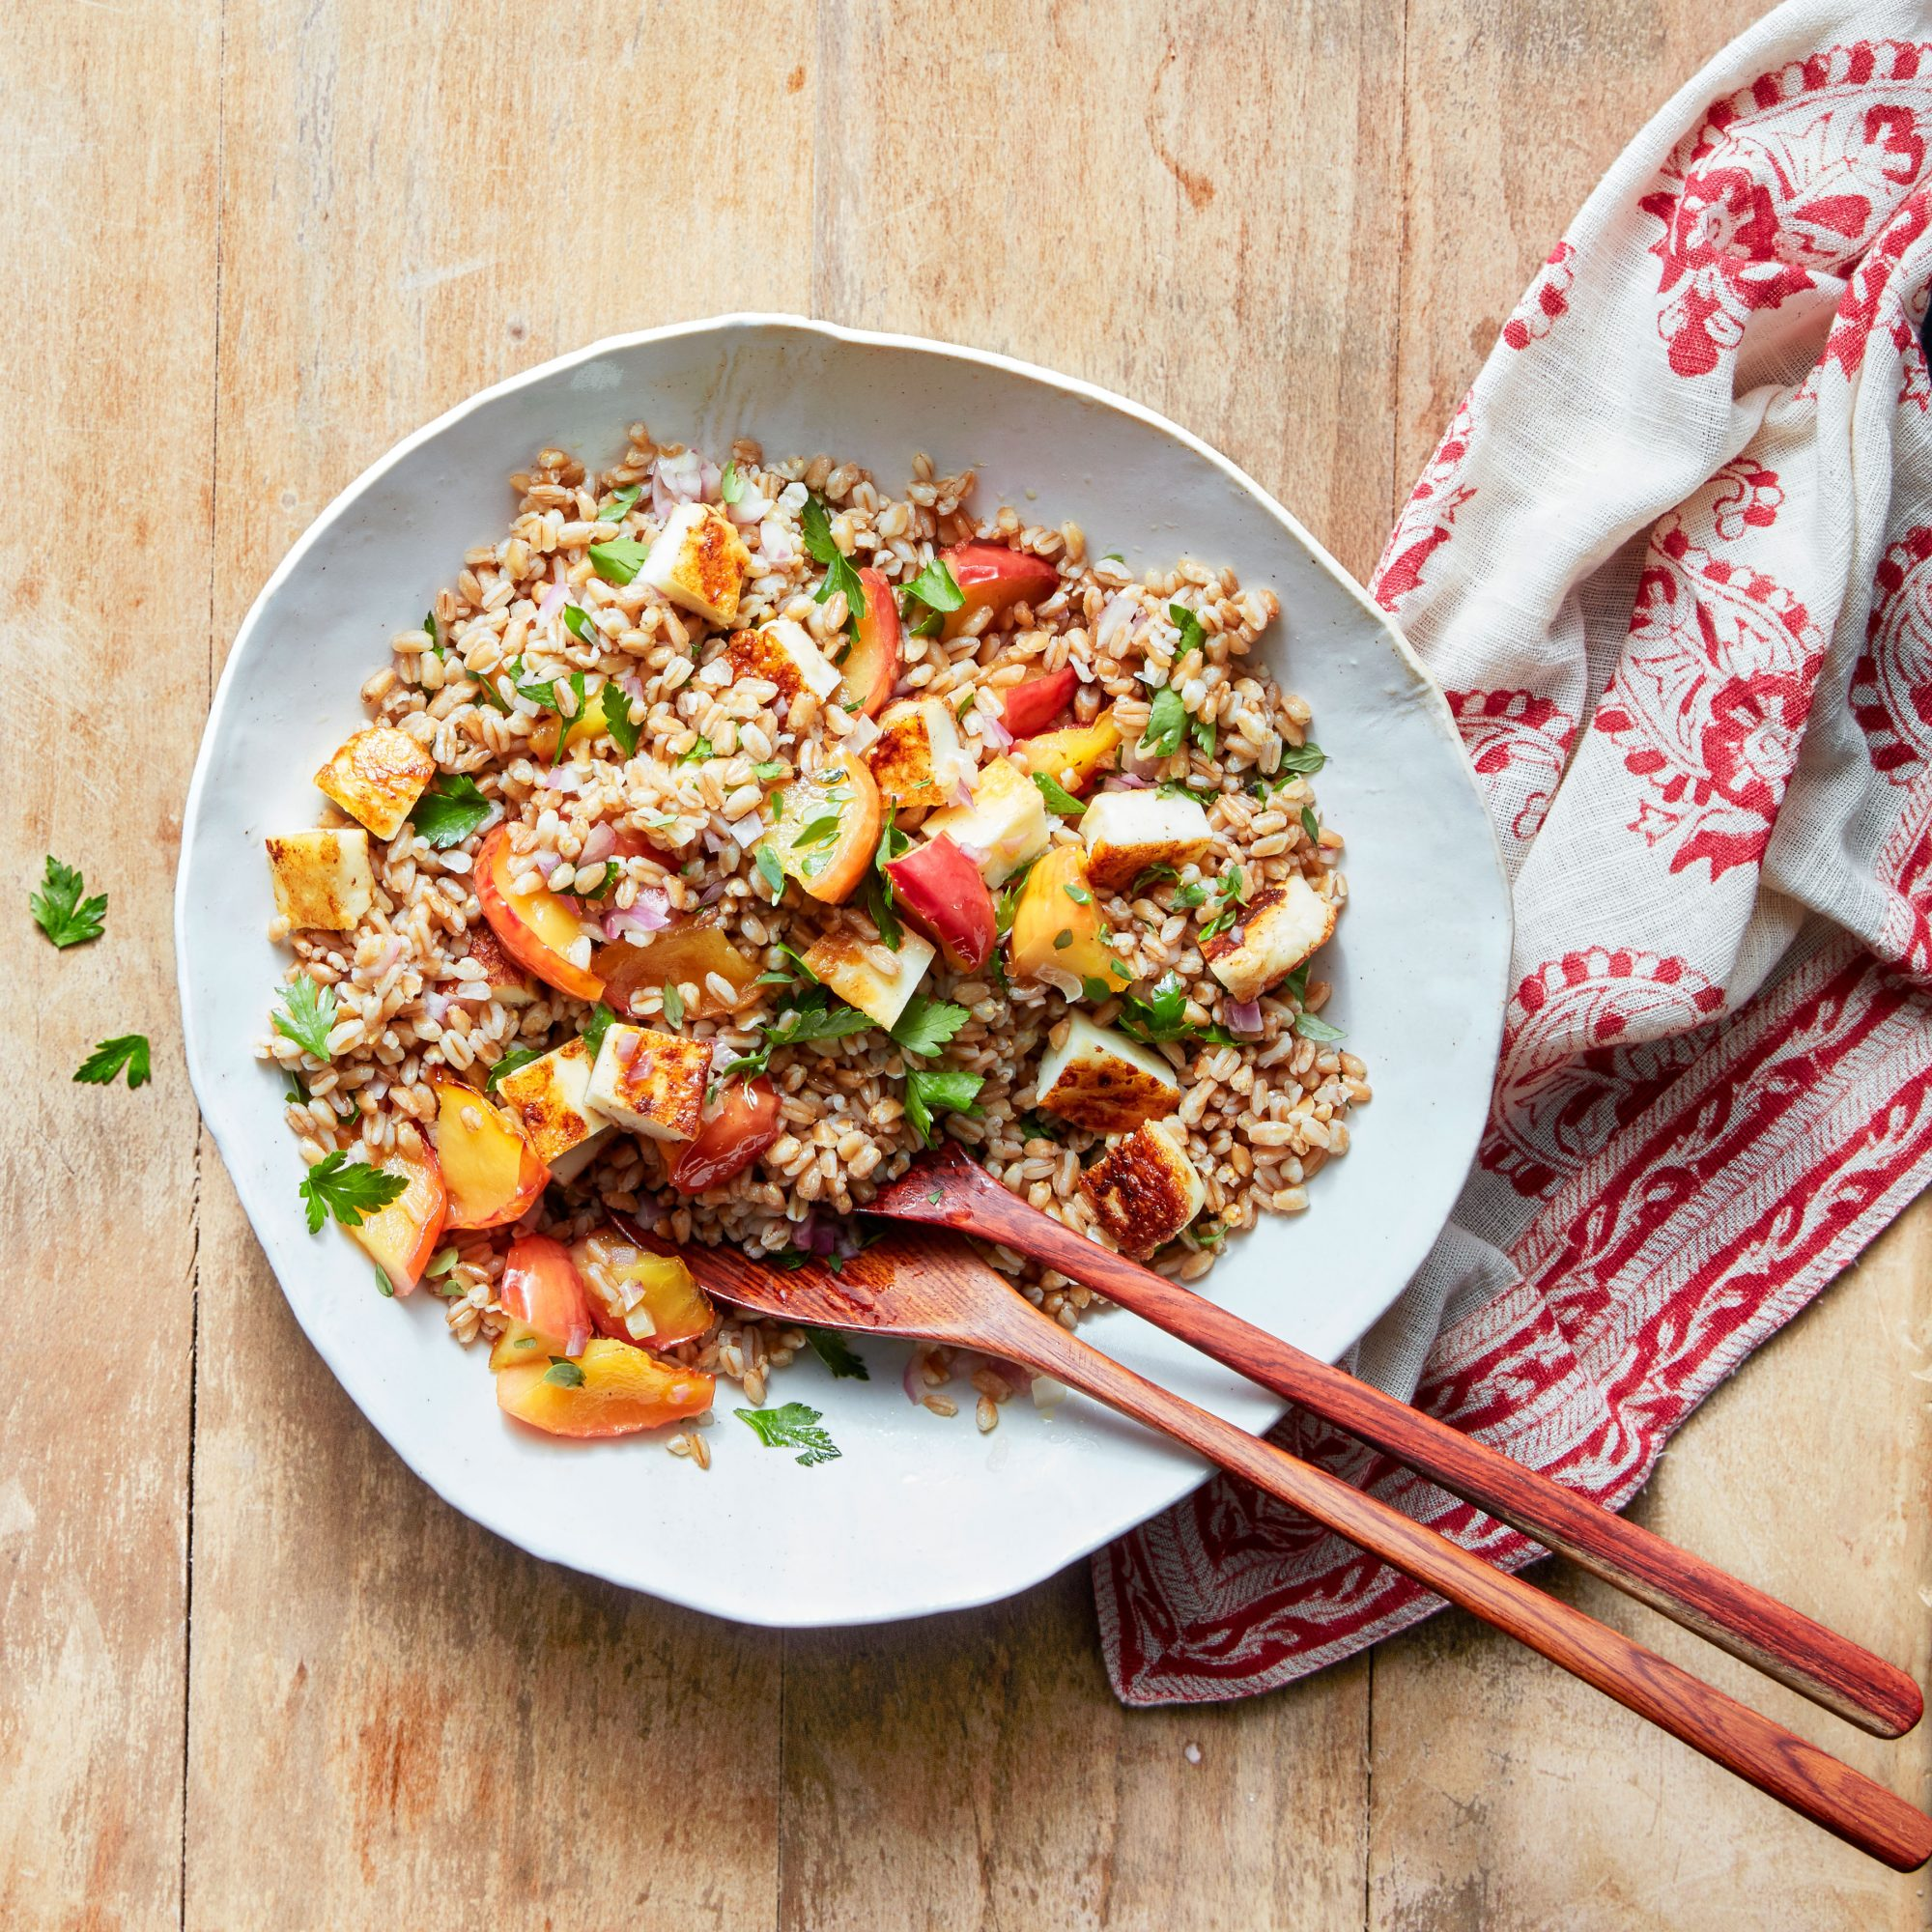 Farro Salad with Apples, Halloumi, and Herbs image